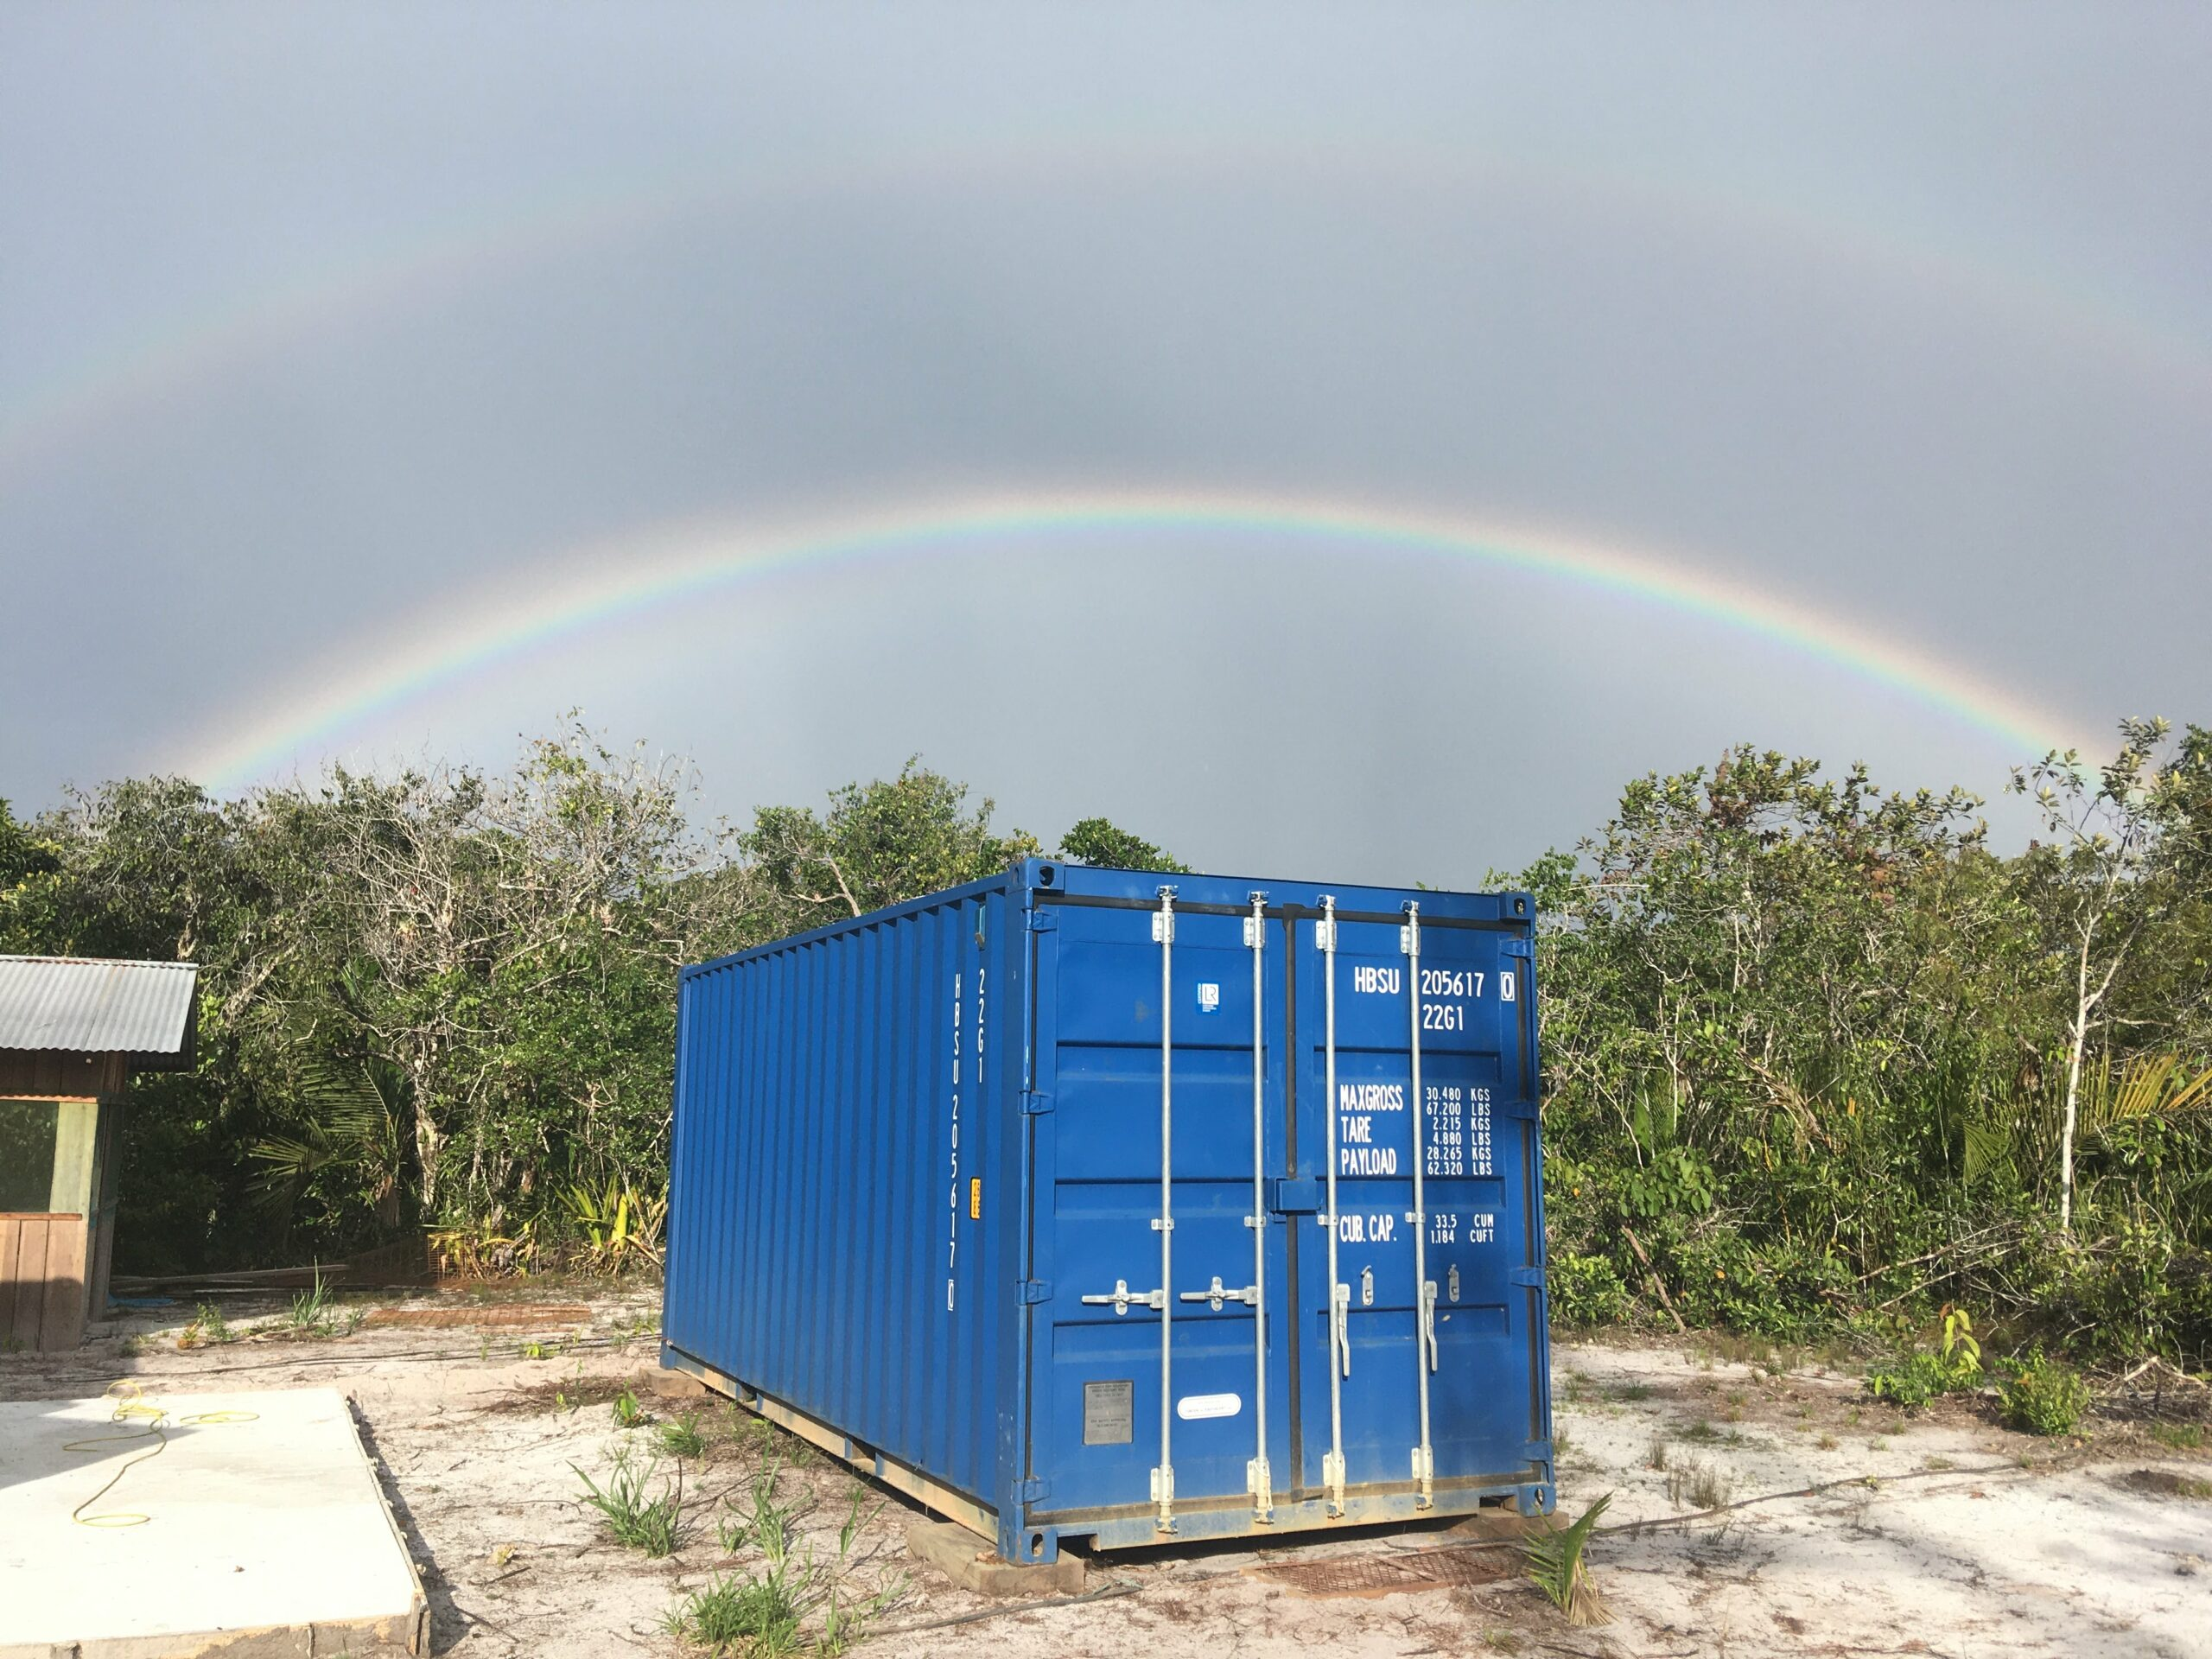 """Double-rainbow just above the storage container in the only """"rainy"""" (actually it was just some drizzle) day when we were working on the site."""